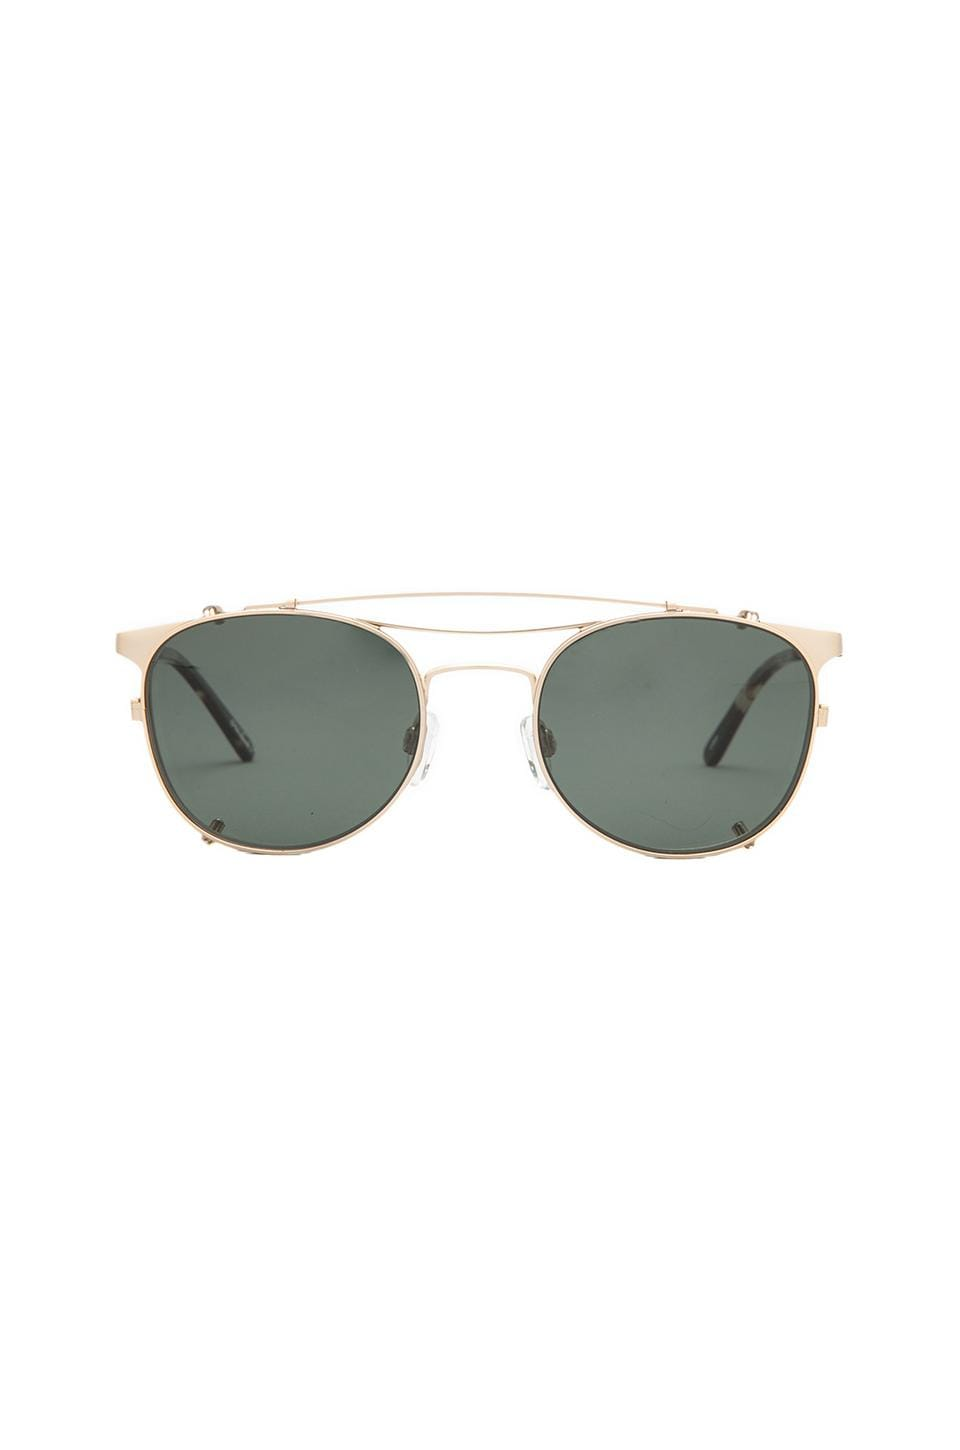 RAEN optics Stryder in Green Polarized